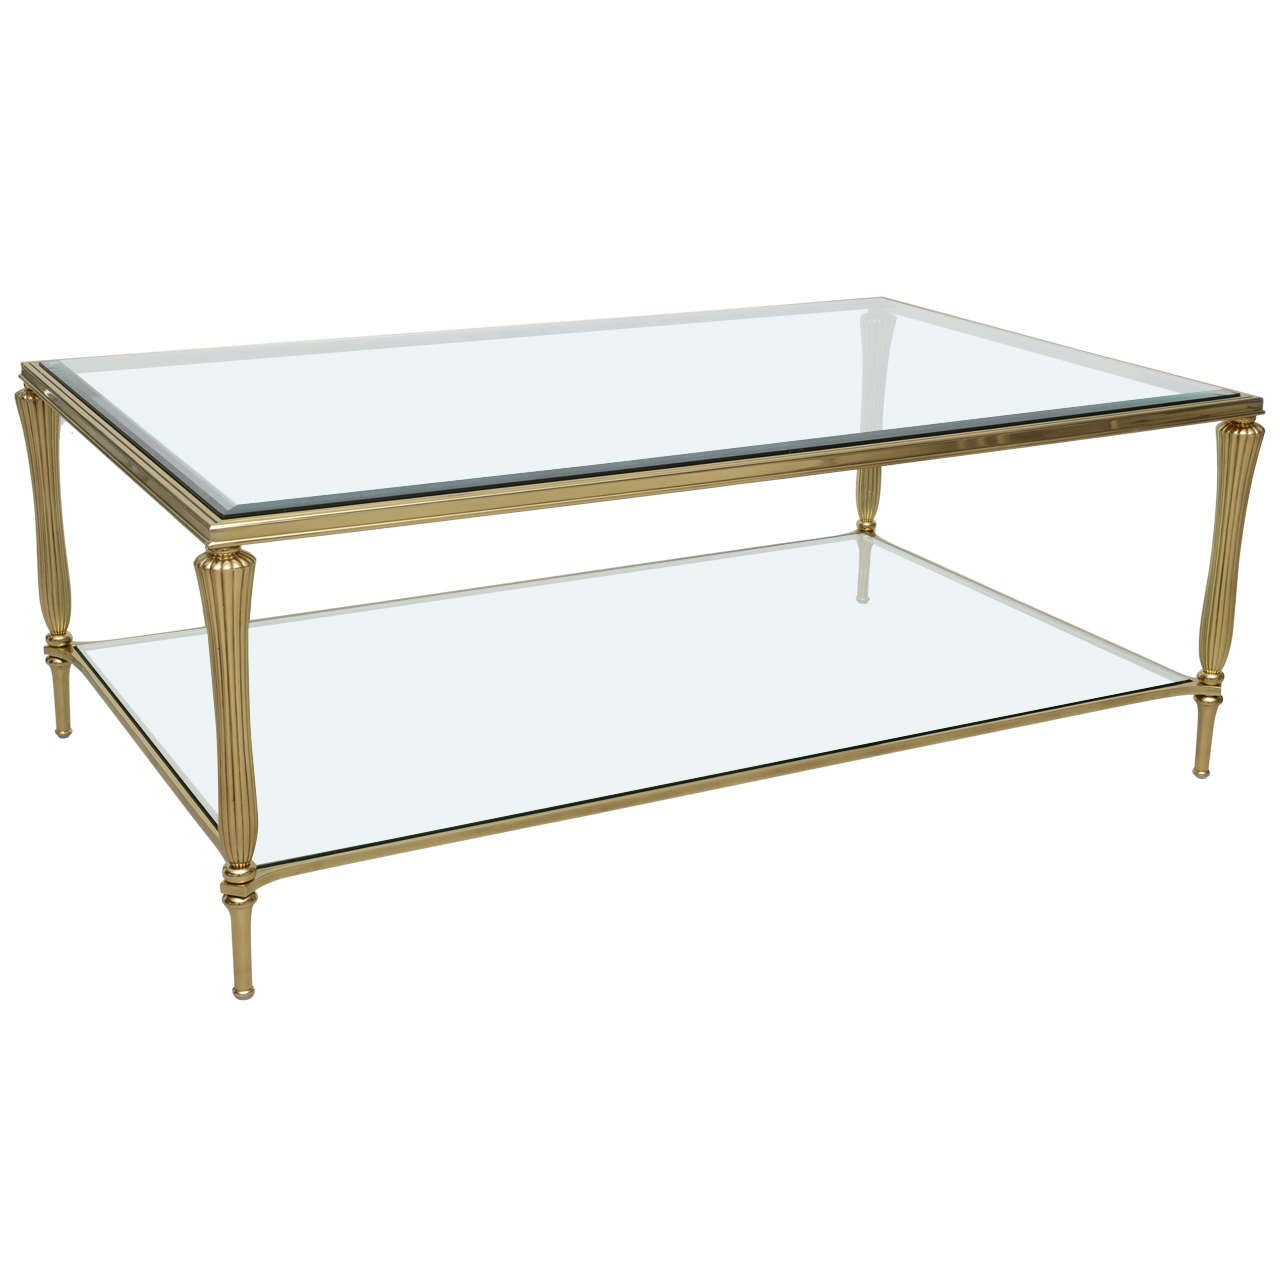 Vintage brass and glass regency style coffee table at 1stdibs for Brass and glass coffee table